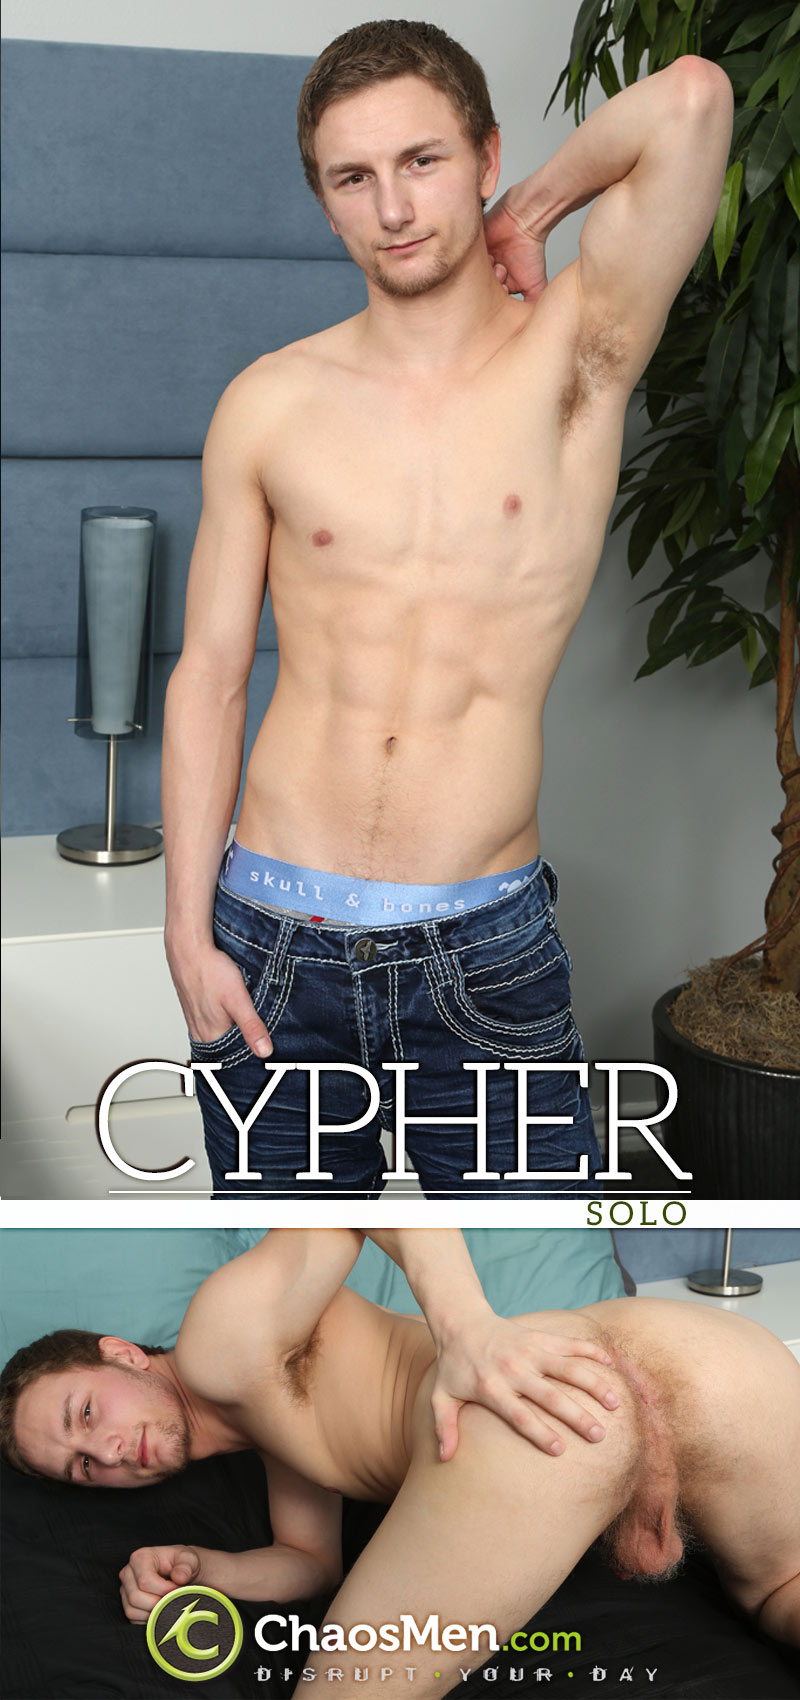 Cypher (Solo) at ChaosMen